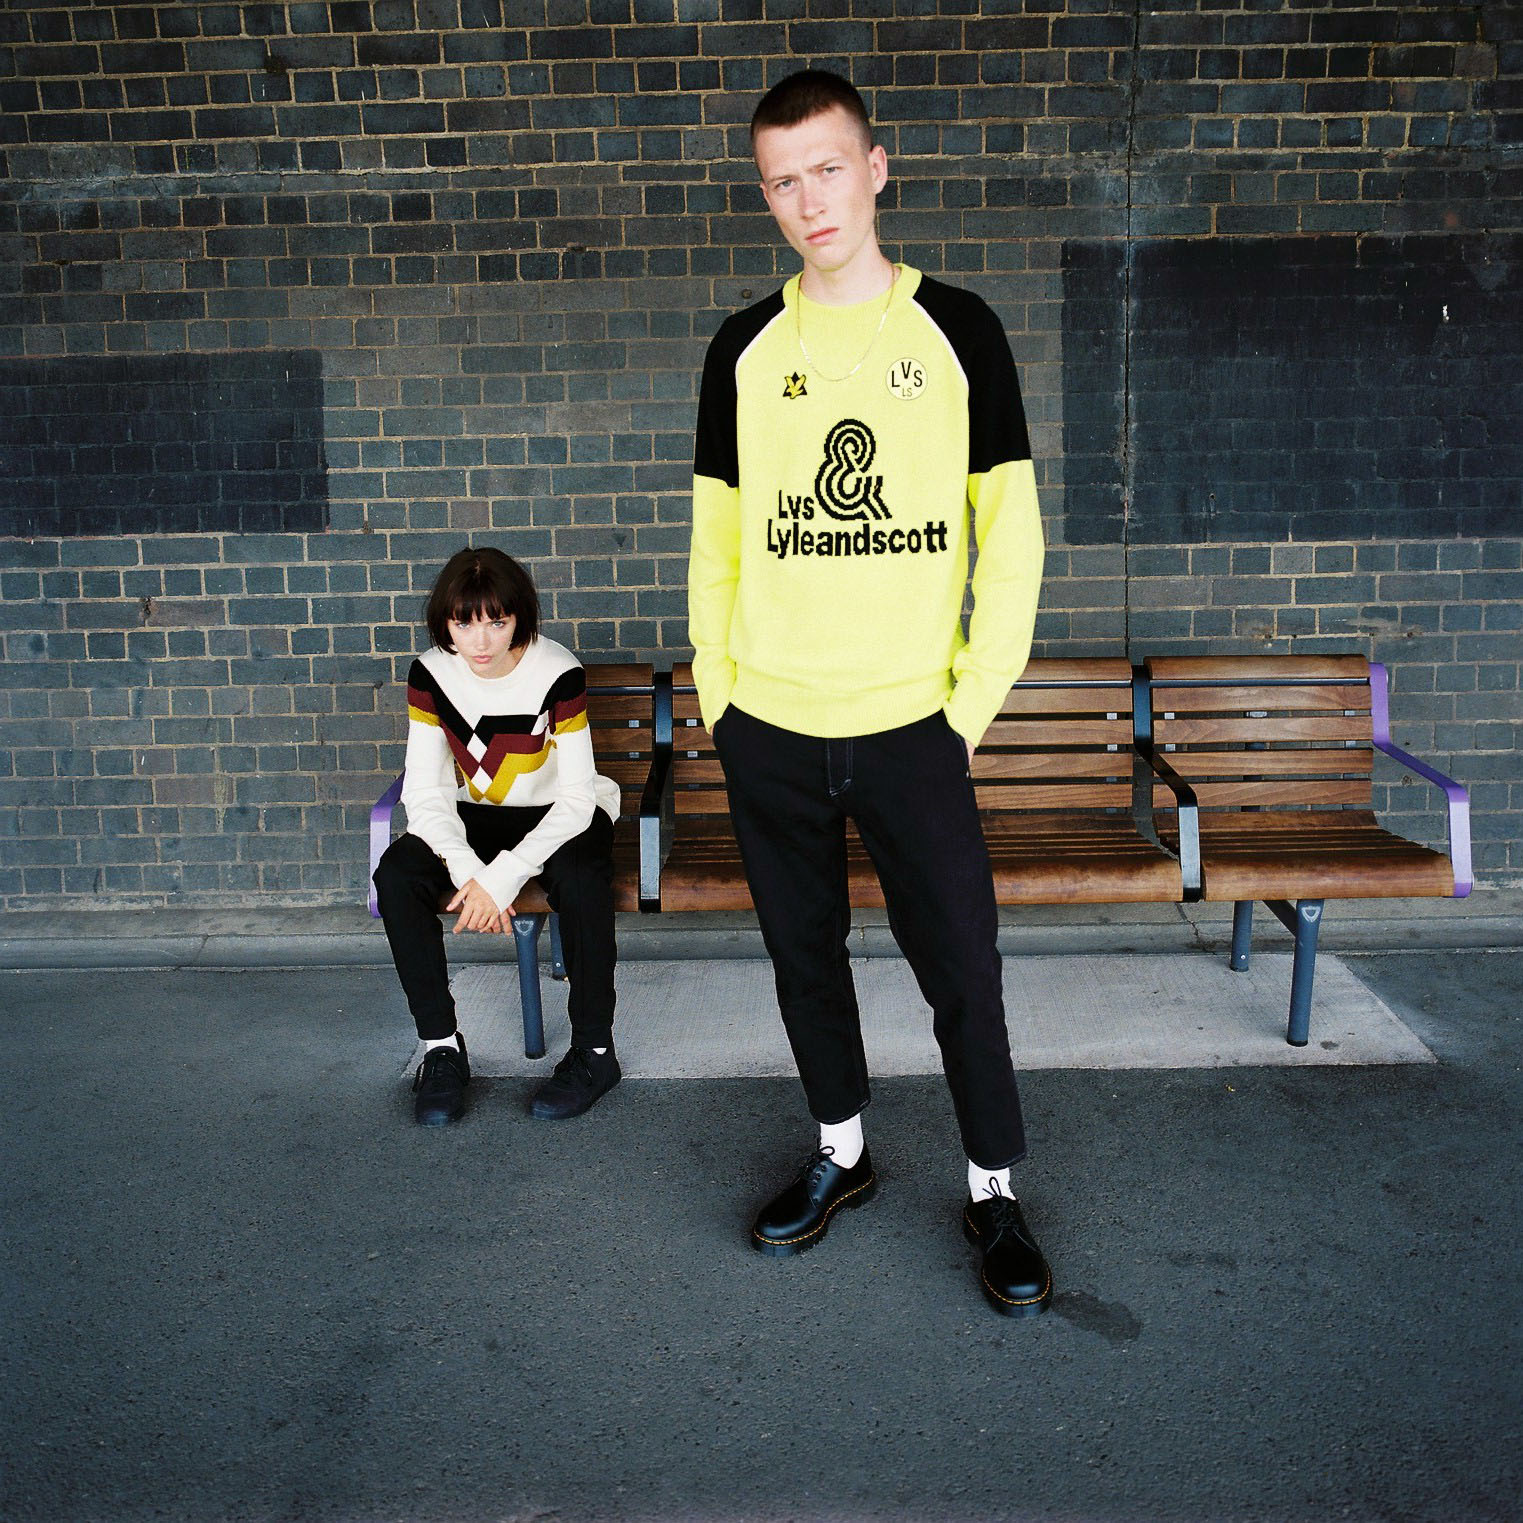 Lad and girl in train platform by lifestyle photographer Tim Cole